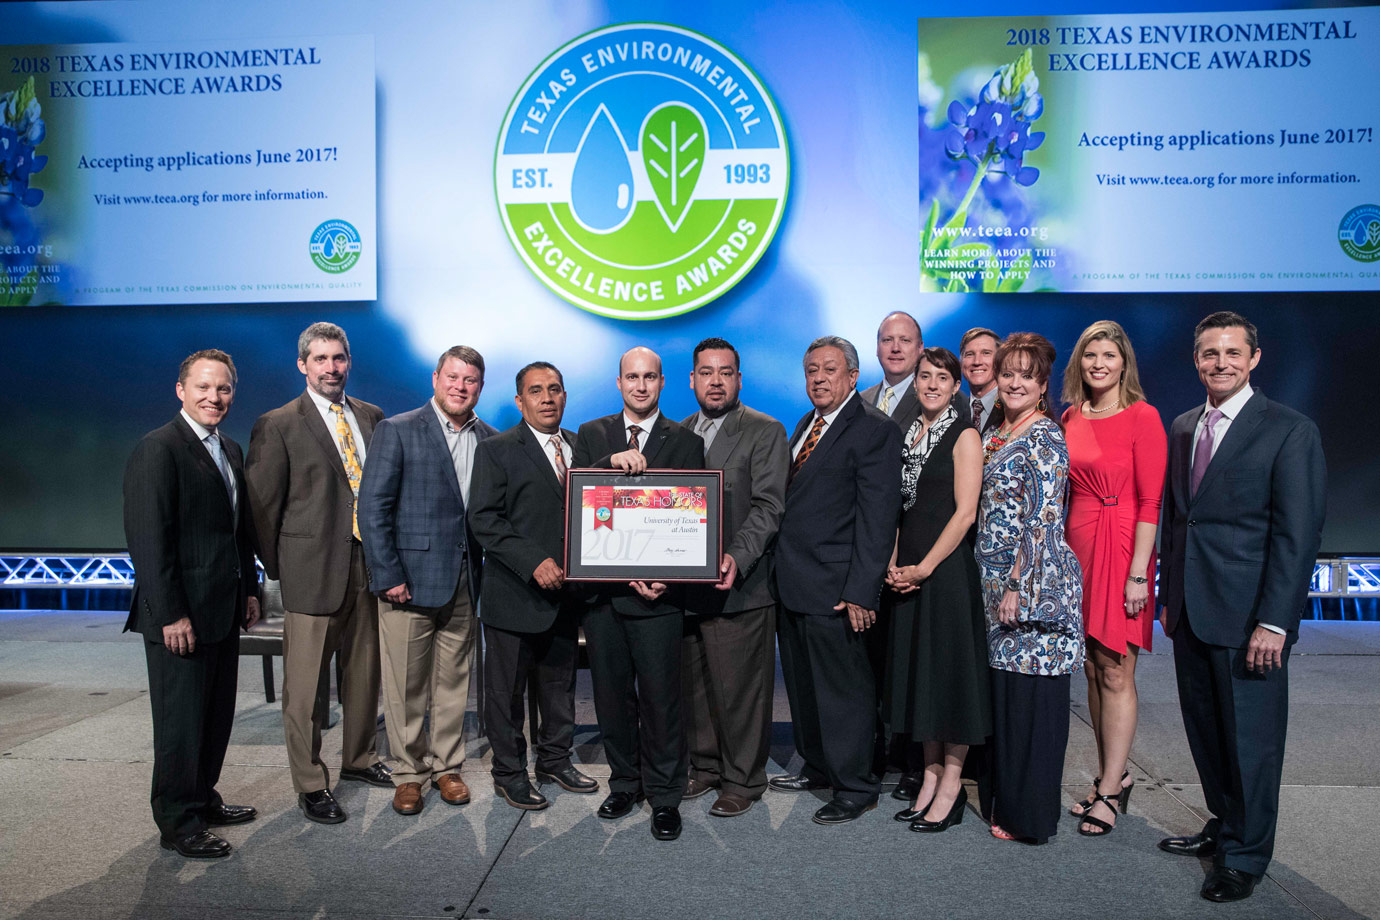 UT Austin winners of a 2017 Texas Environmental Excellence Award from the TCEQ